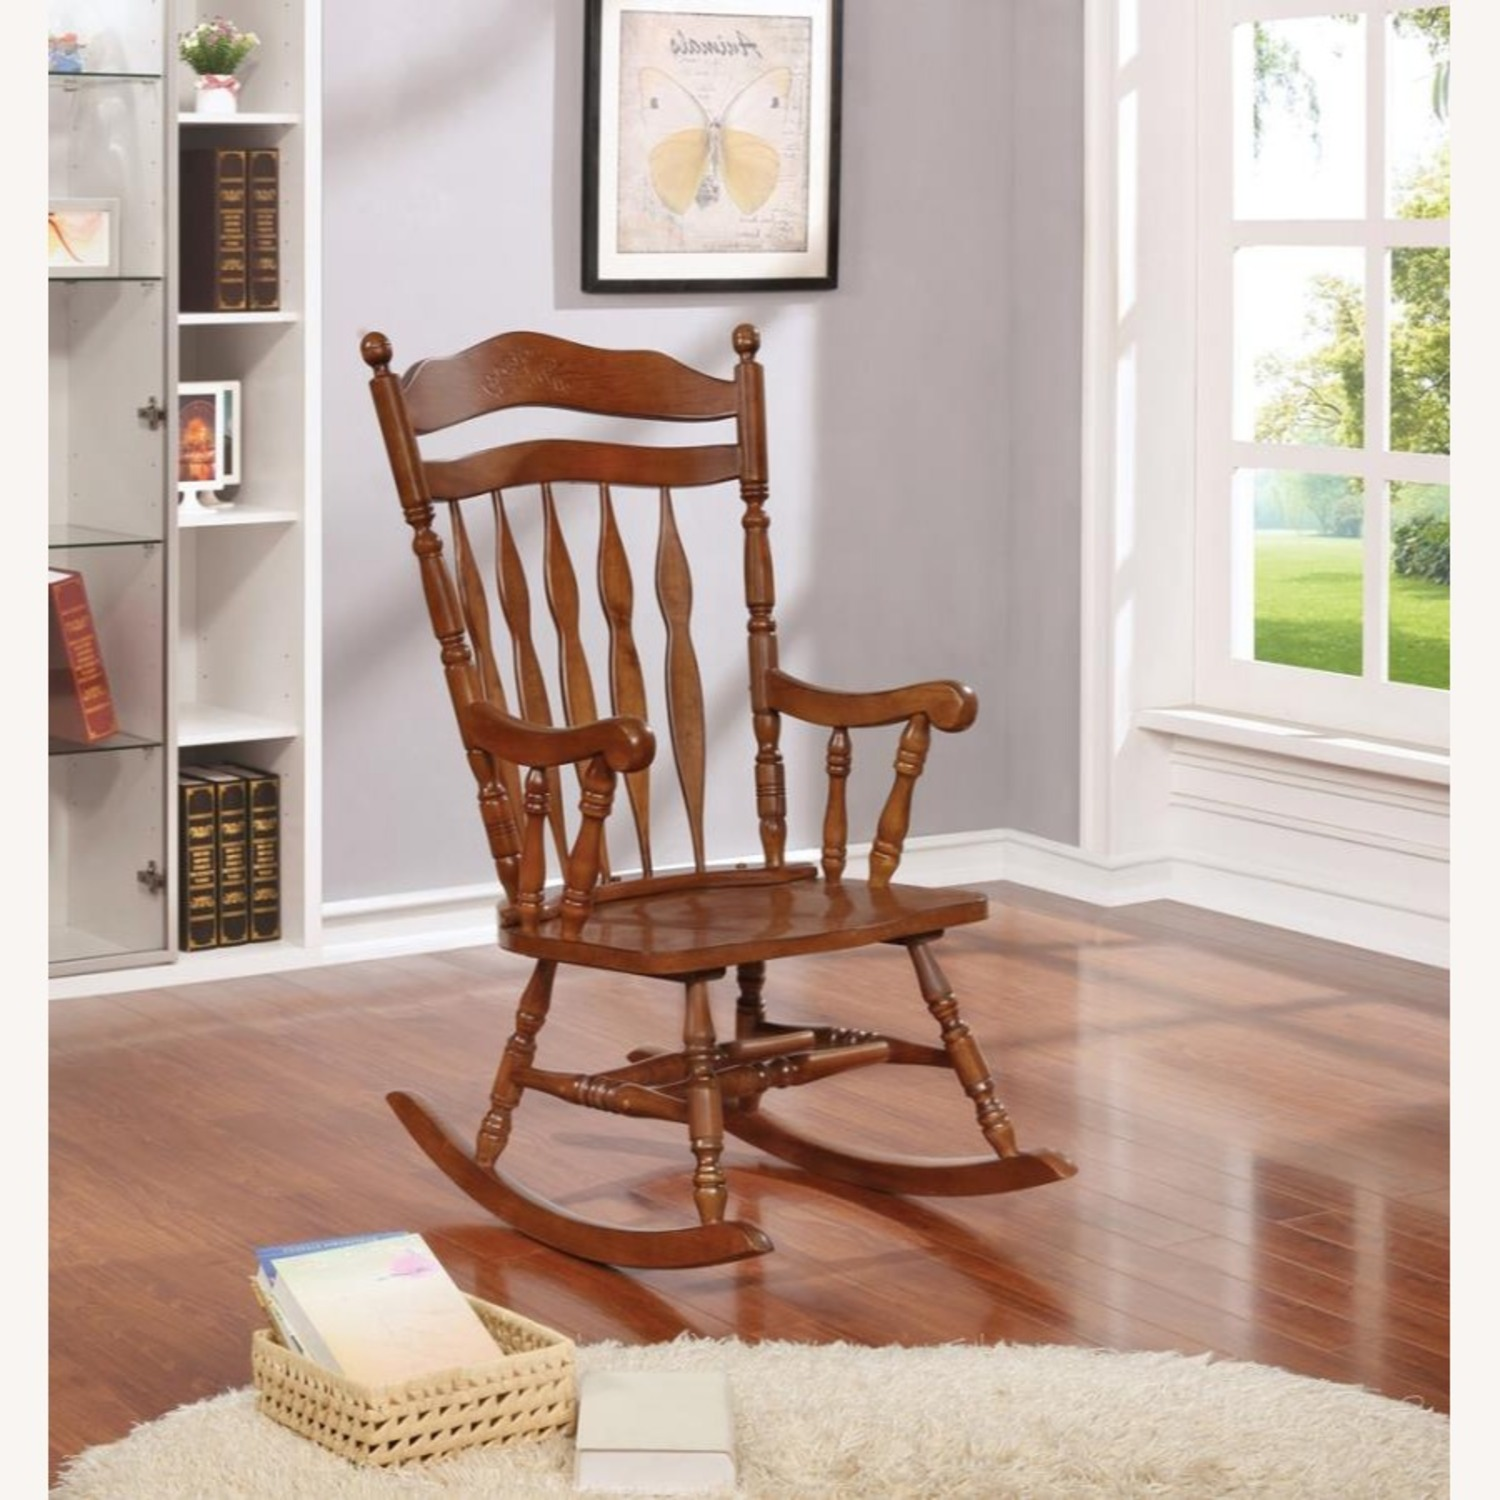 Windor Style Rocking Chair In Medium Brown Finish - image-4